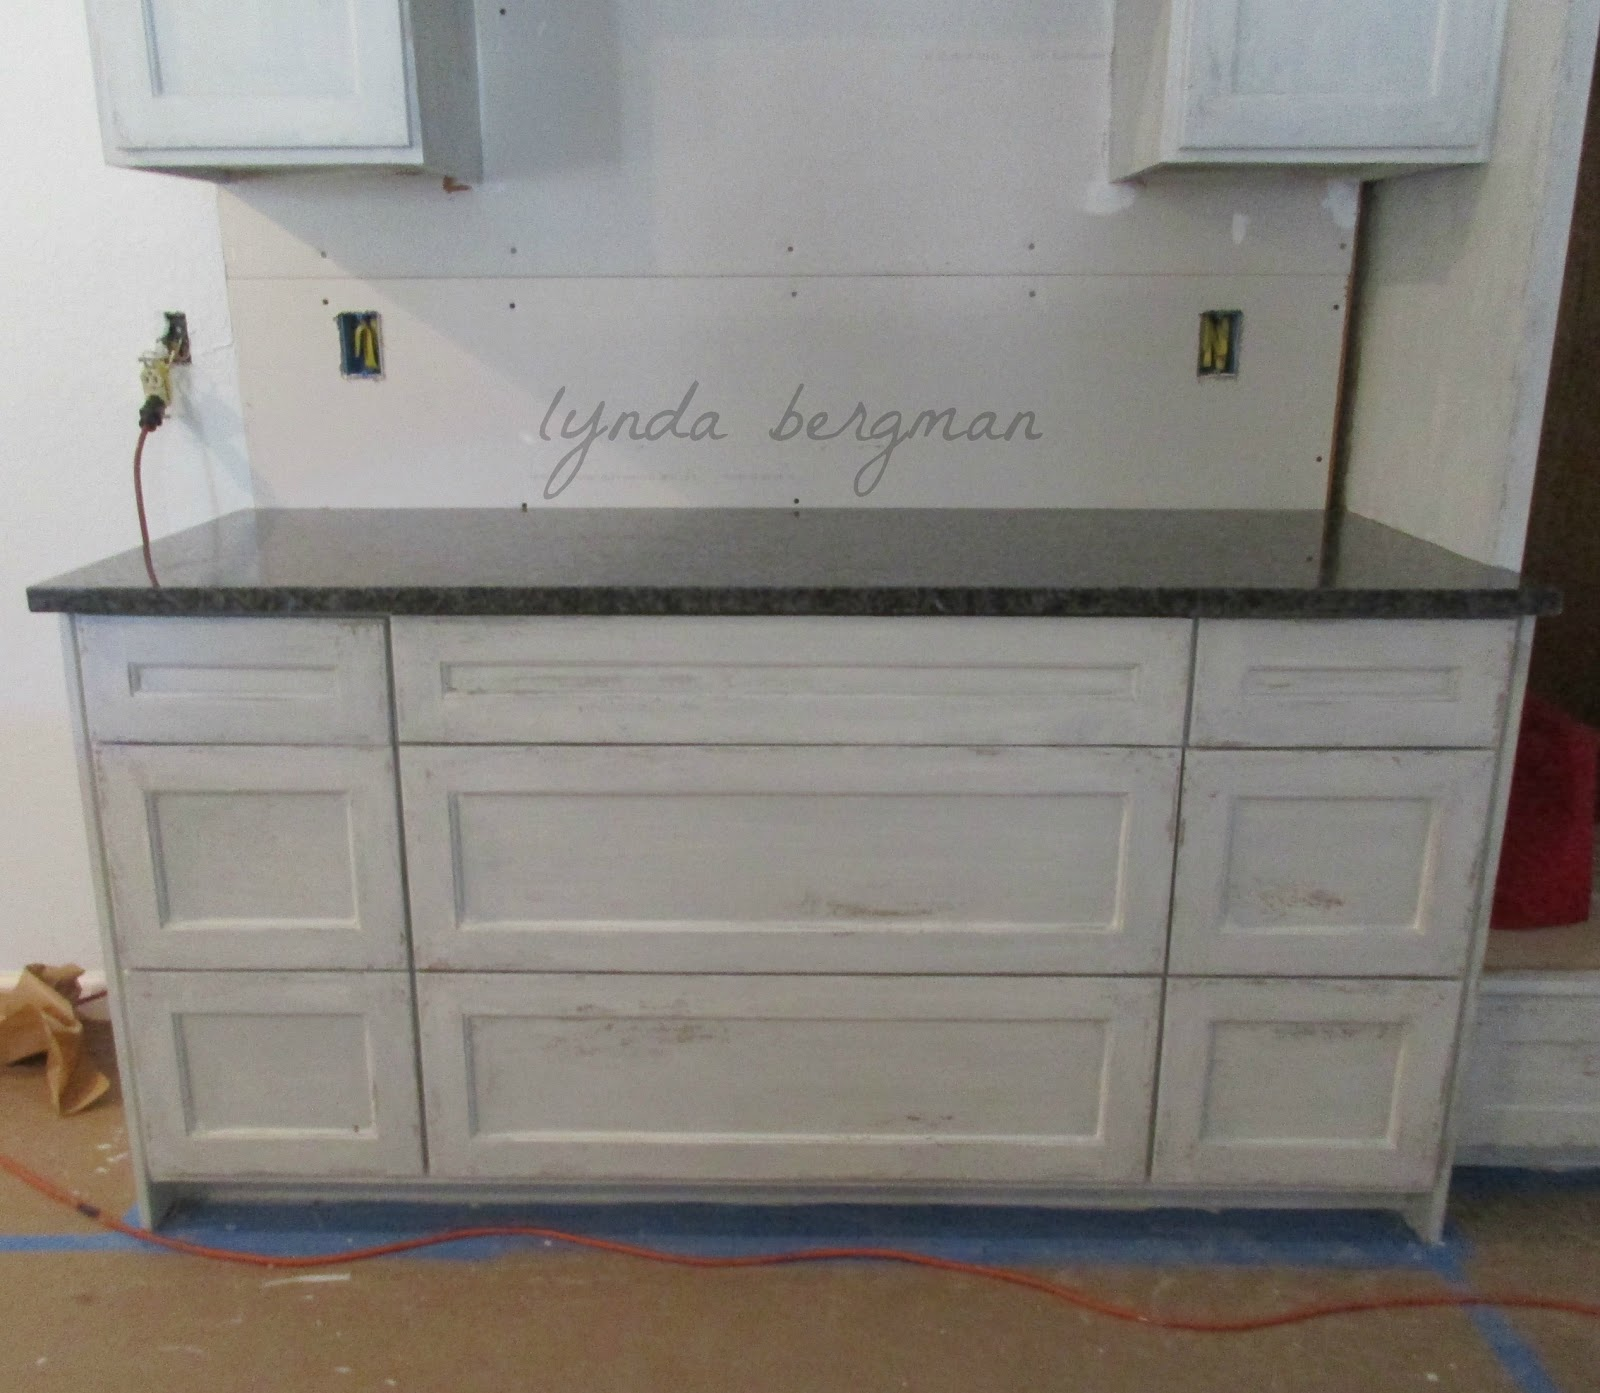 Grey Distressed Kitchen Cabinets: LYNDA BERGMAN DECORATIVE ARTISAN: PAINTING A DISTRESSED